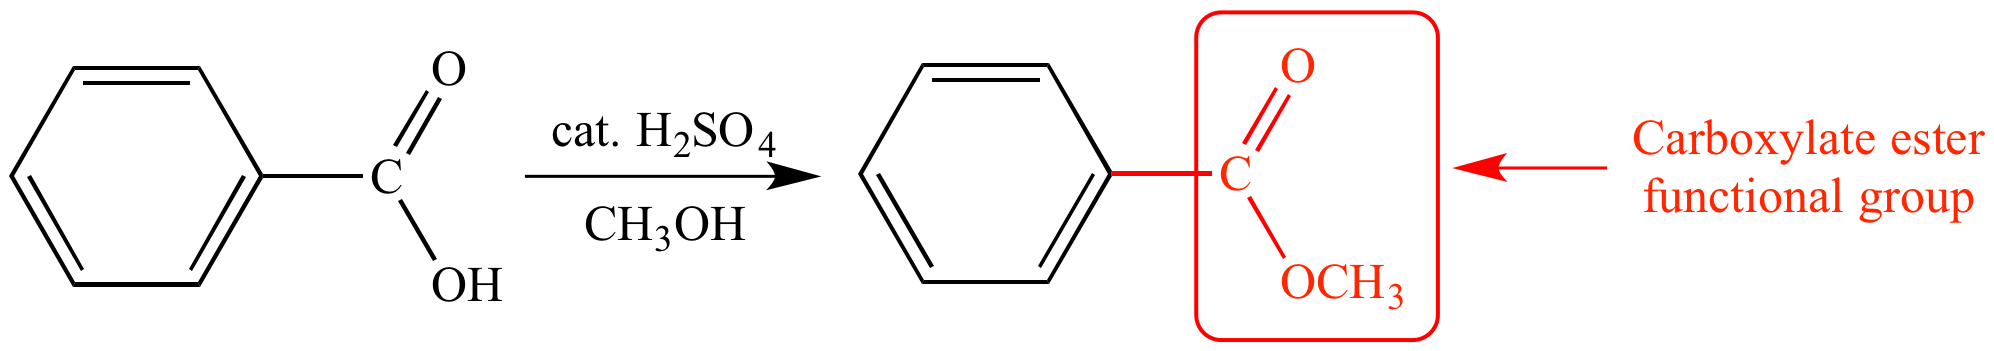 organic chem esterification Esterification reaction: the synthesis and purification of 2-acetoxybenzoic acid and subsequent analysis of the pure product (acetylsalicylic acid.